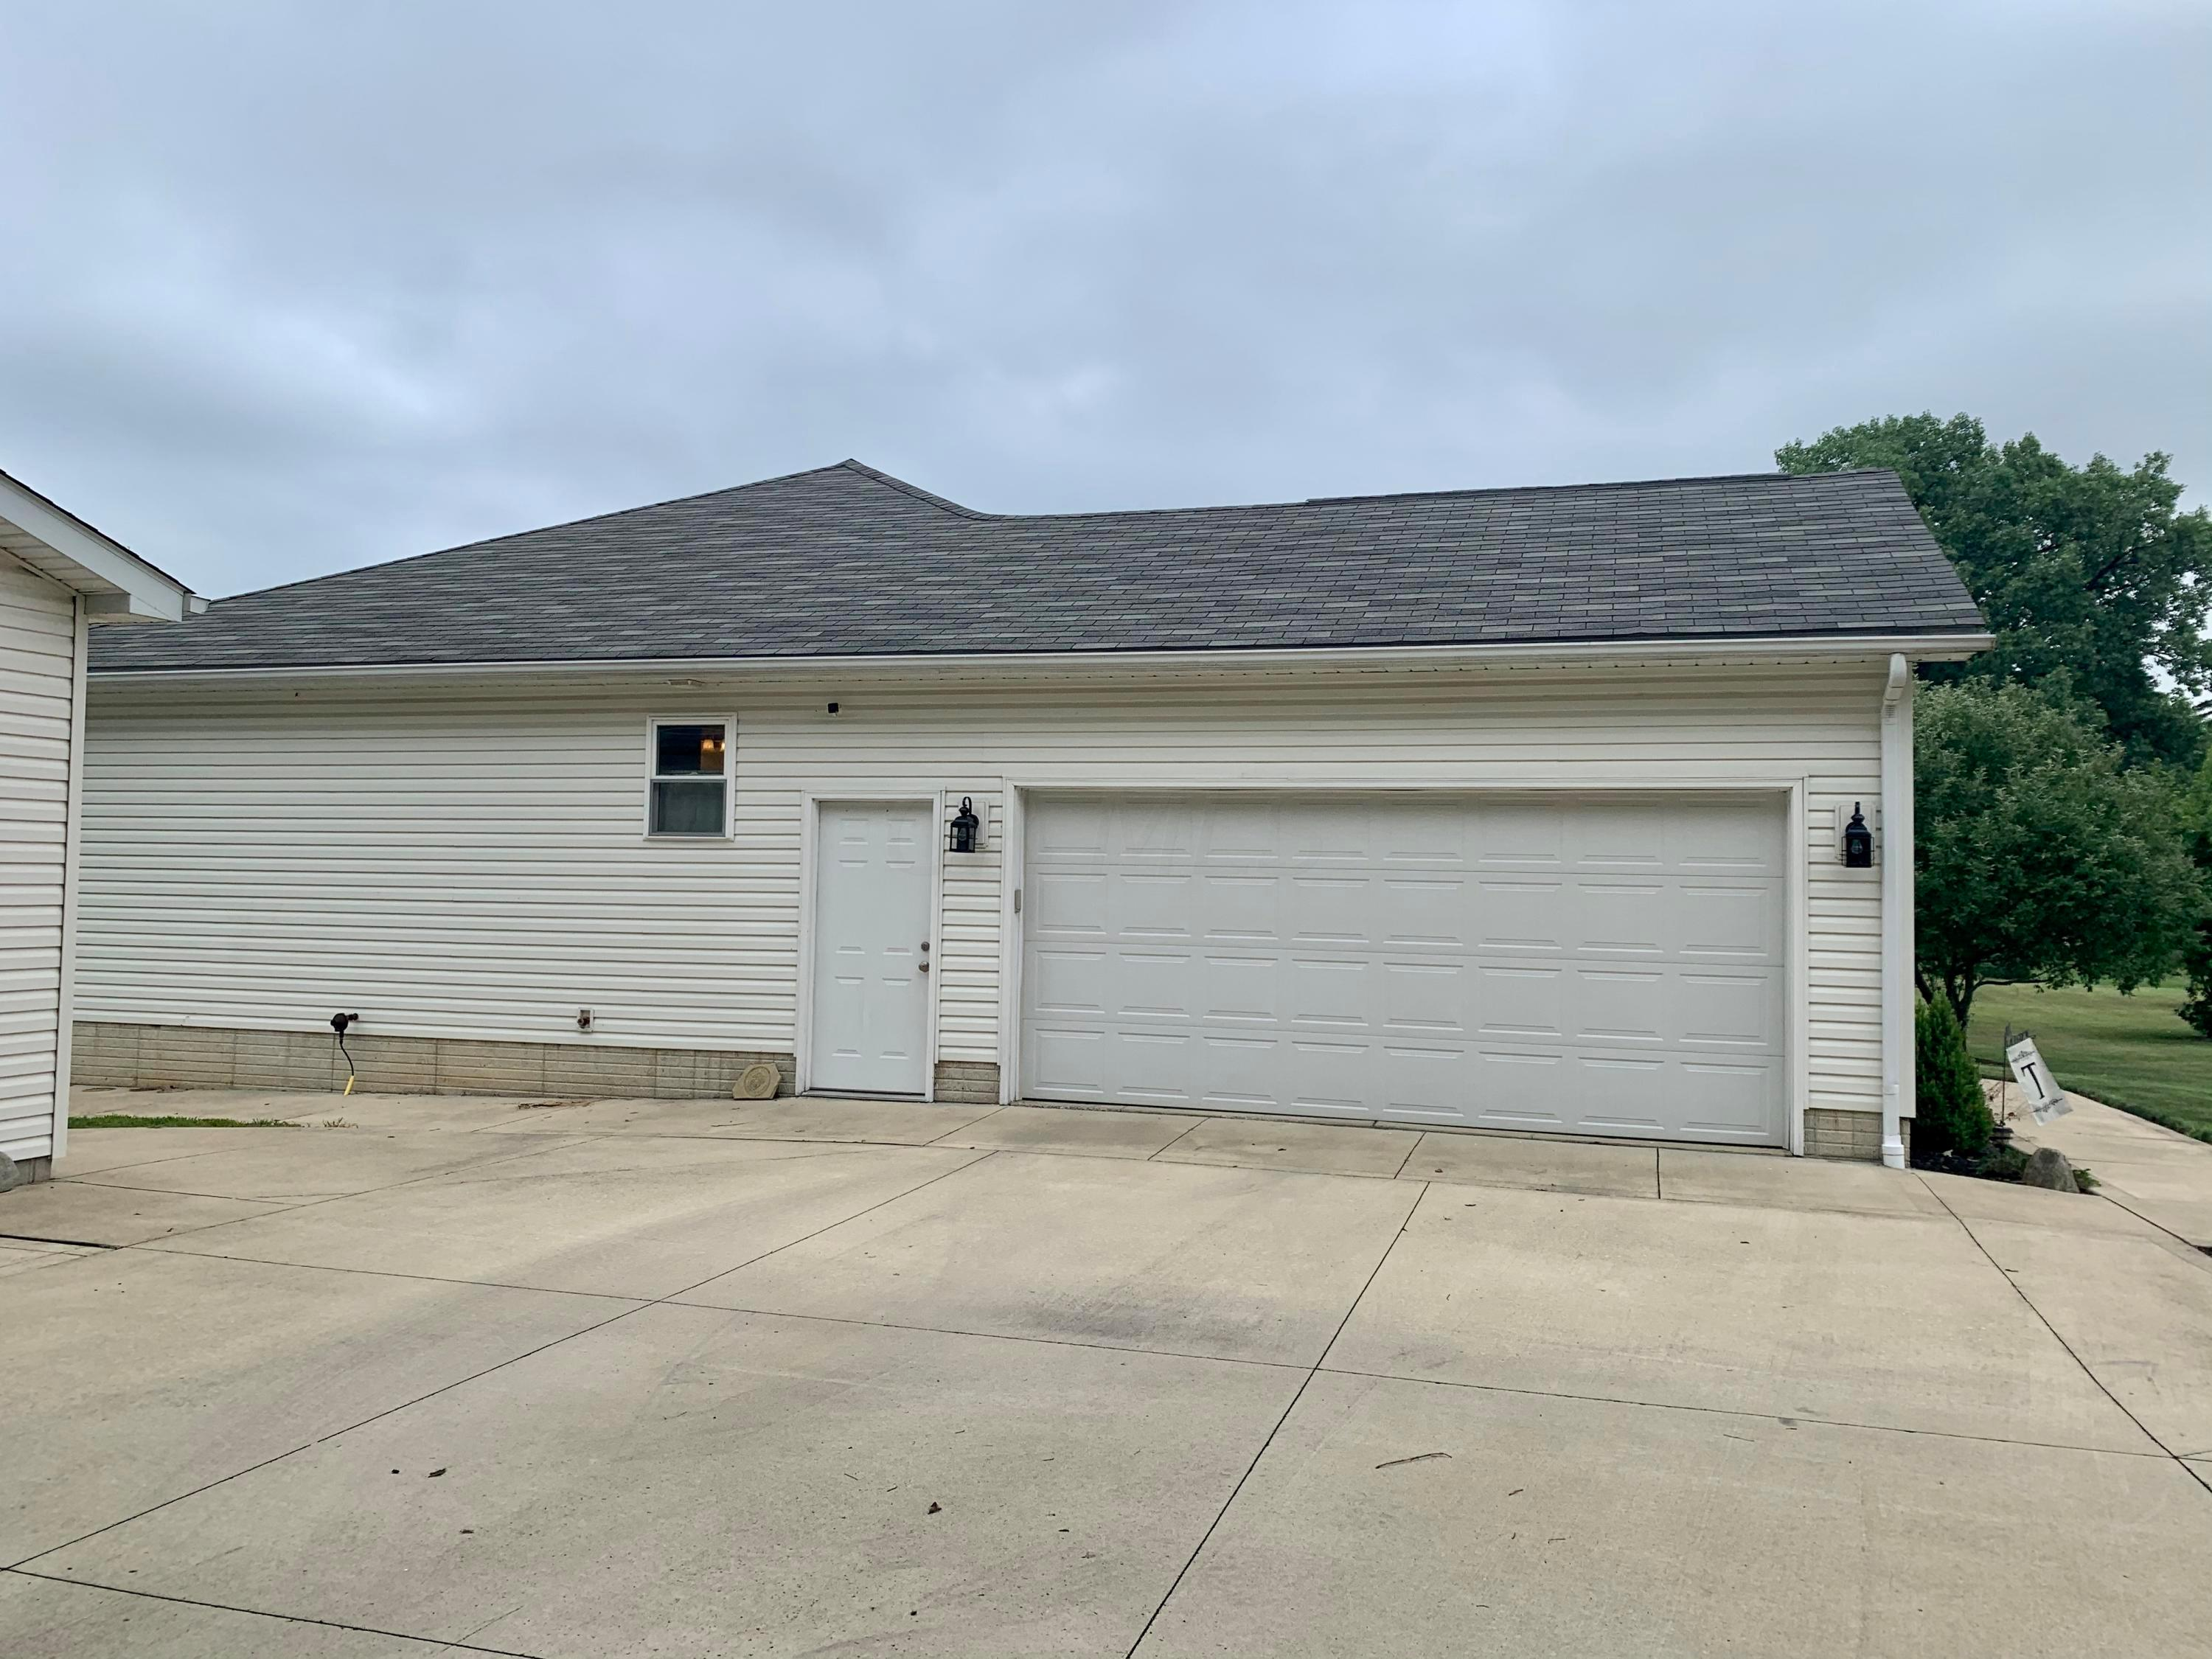 6329 County Road 191, Marengo, Ohio 43334, 3 Bedrooms Bedrooms, ,2 BathroomsBathrooms,Residential,For Sale,County Road 191,220025801